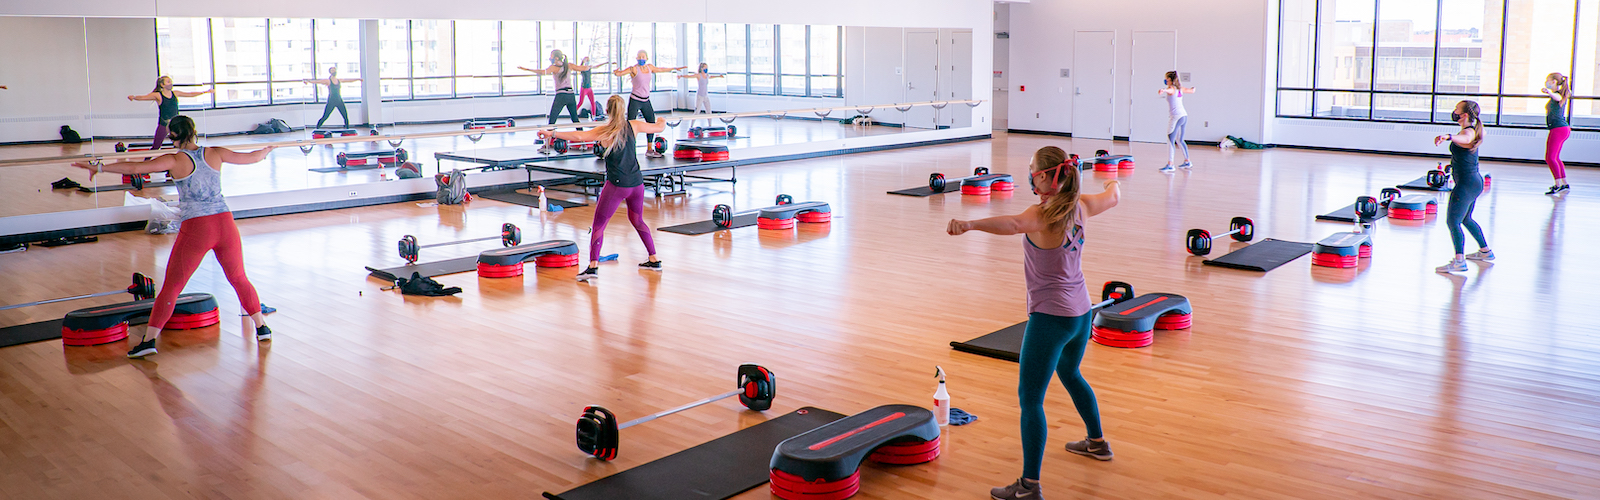 Participants standing in a weight training class performing stretches.